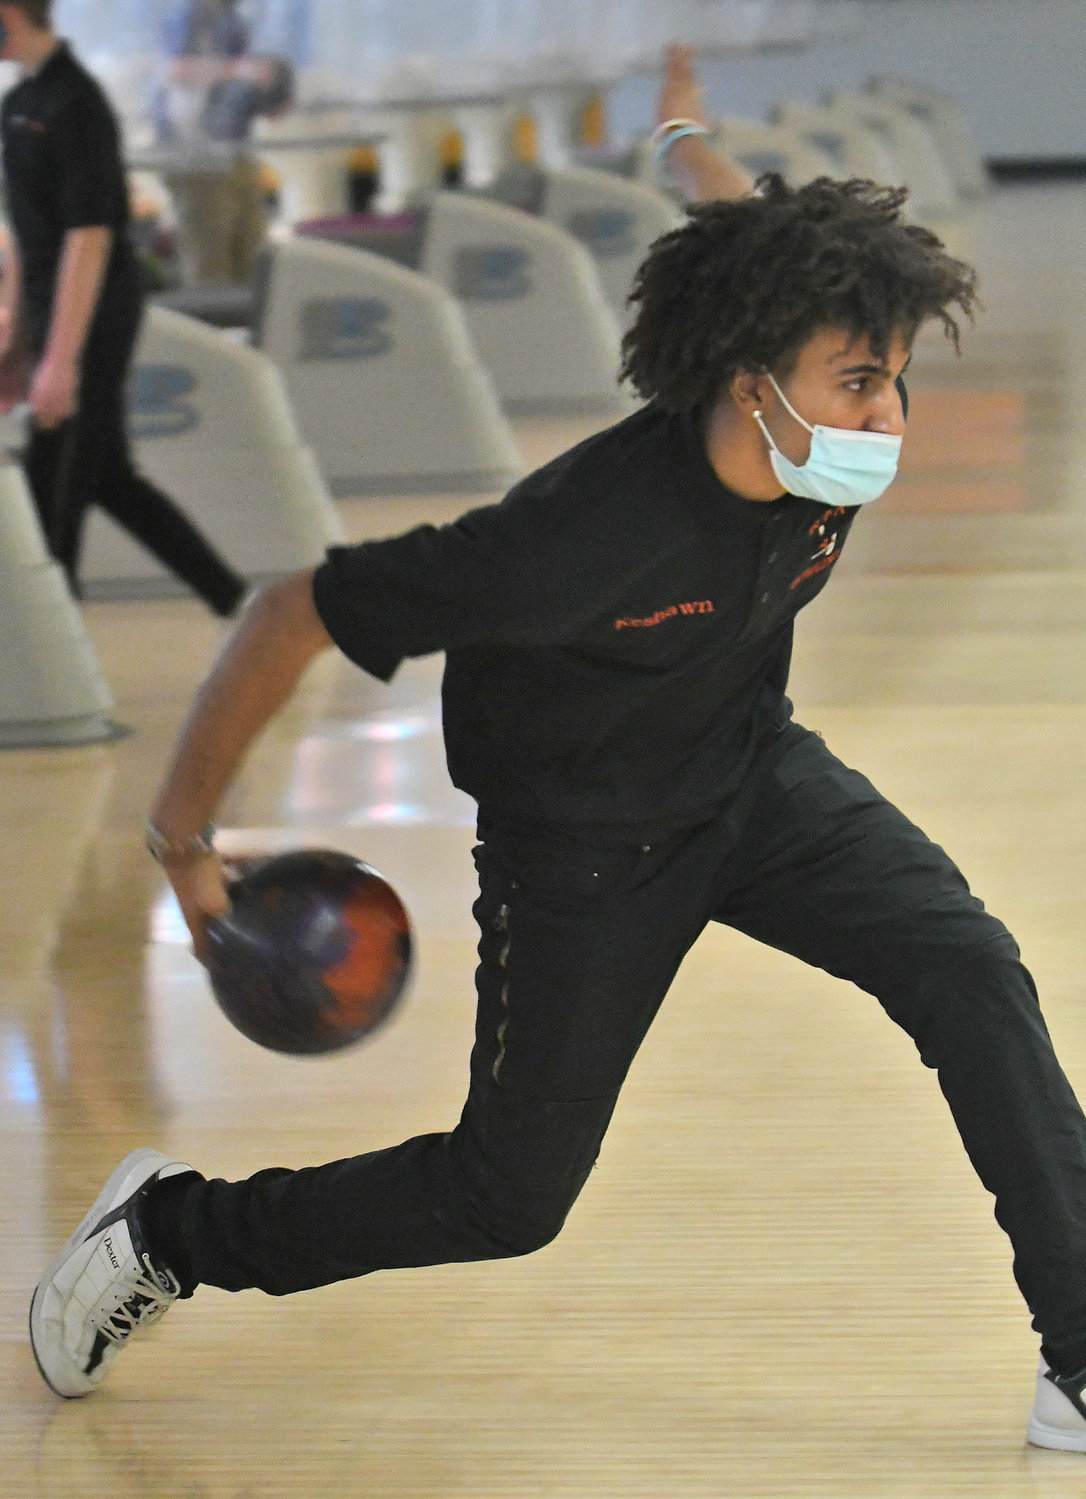 TVL ALL-STAR — RFA senior bowler Keshawn Clark gets set to roll the ball during the team's virtual match against Notre Dame on Feb. 9 at King Pin Lanes. Clark has been named a Tri-Valley League first team all-star.